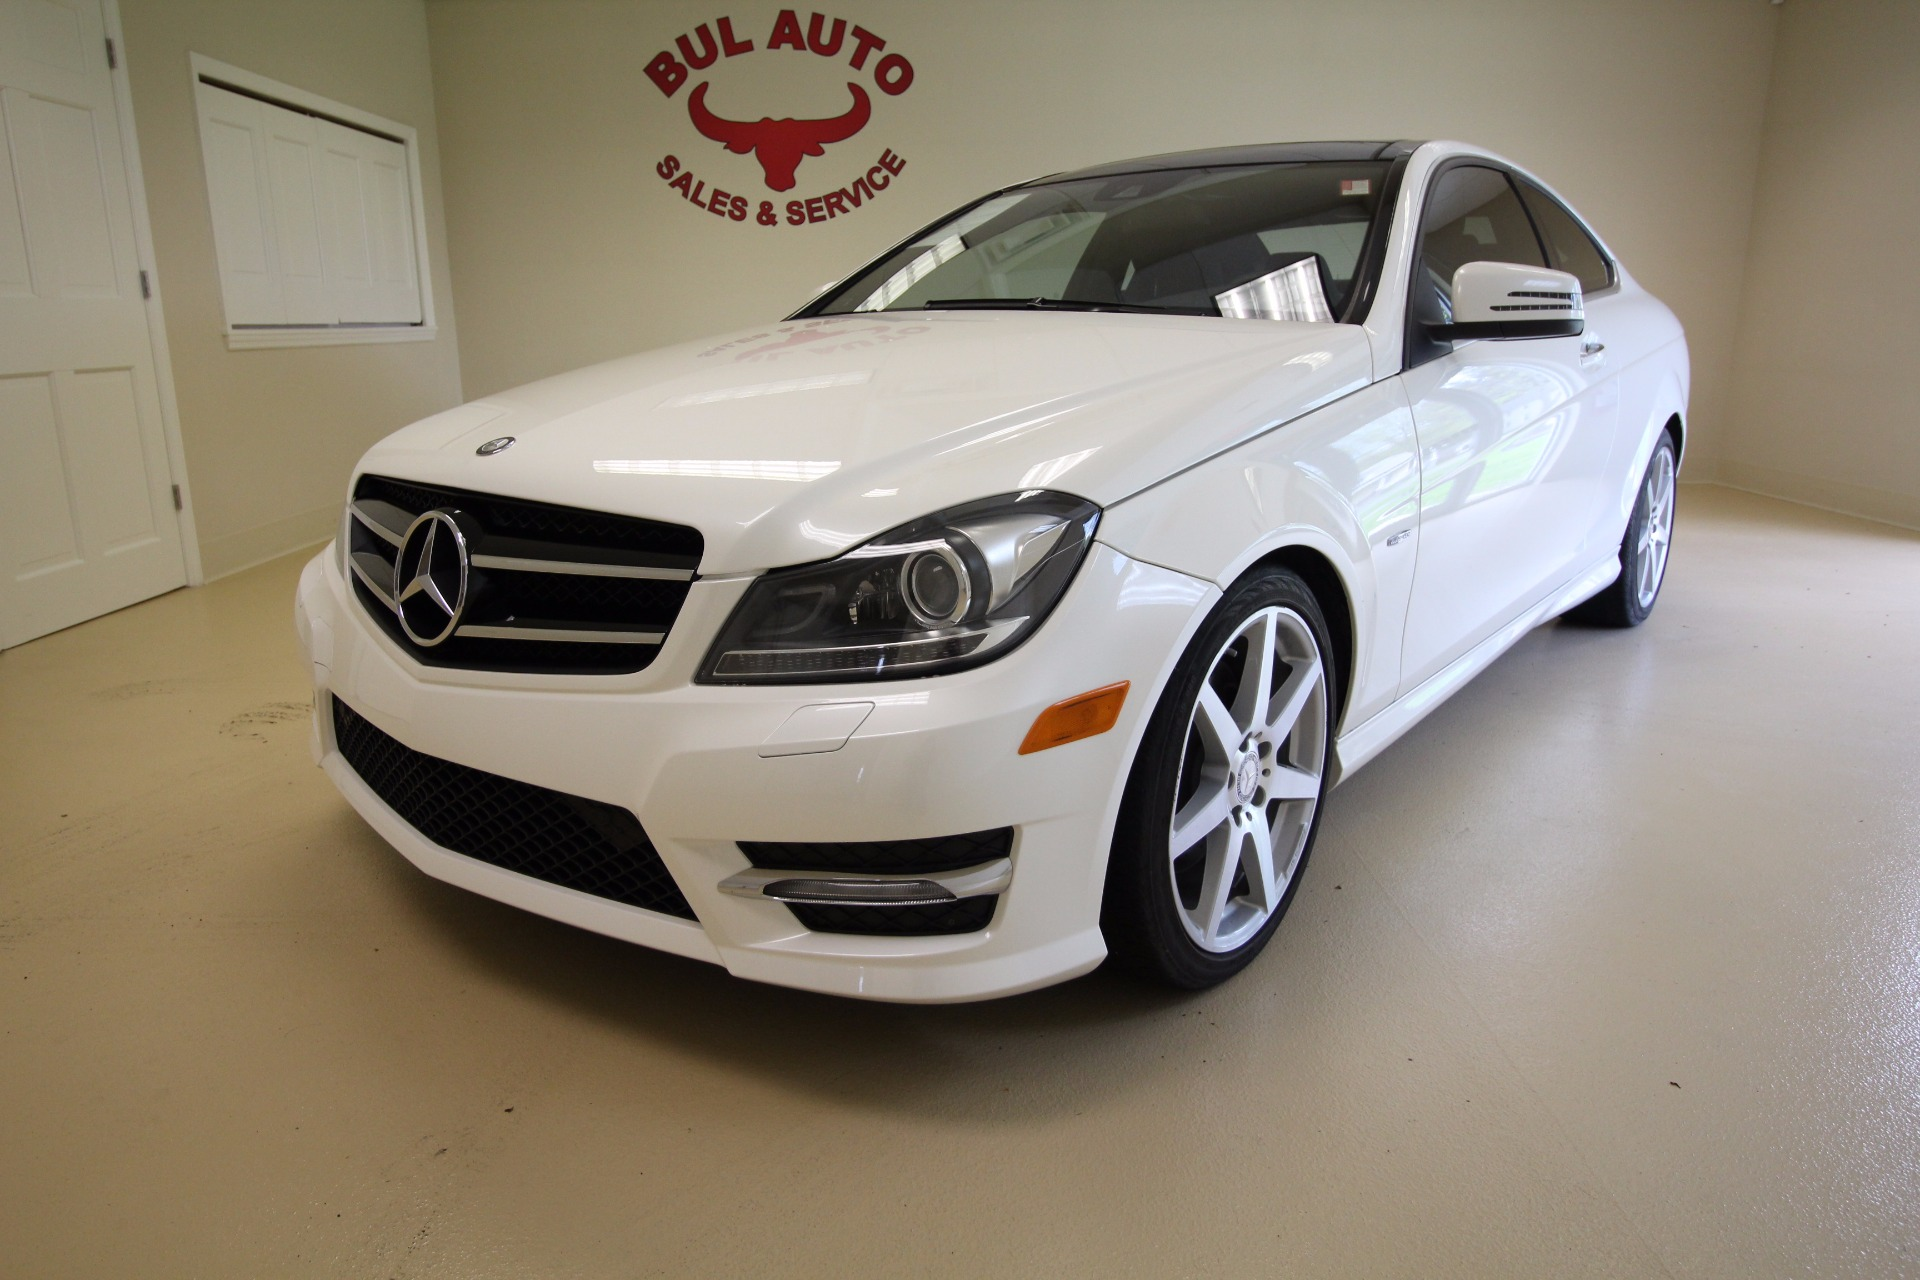 2012 mercedes benz c class c350 coupe 4matic stock 17088 for 2012 mercedes benz c300 tire size